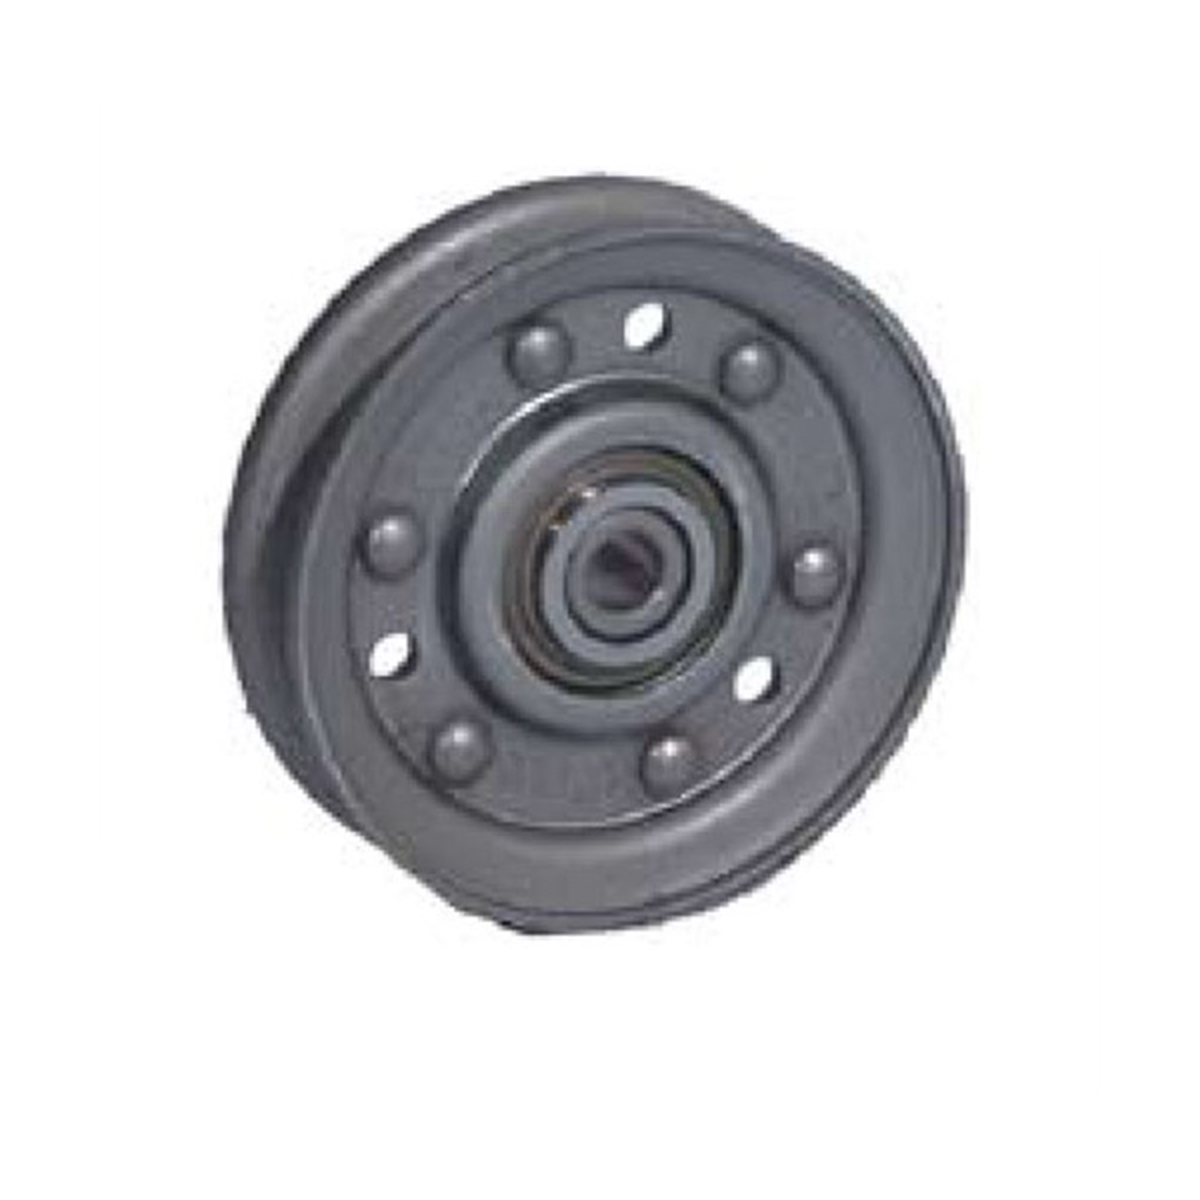 AVI-56-006 Dixie Chopper V-Idler Pulley 3.5